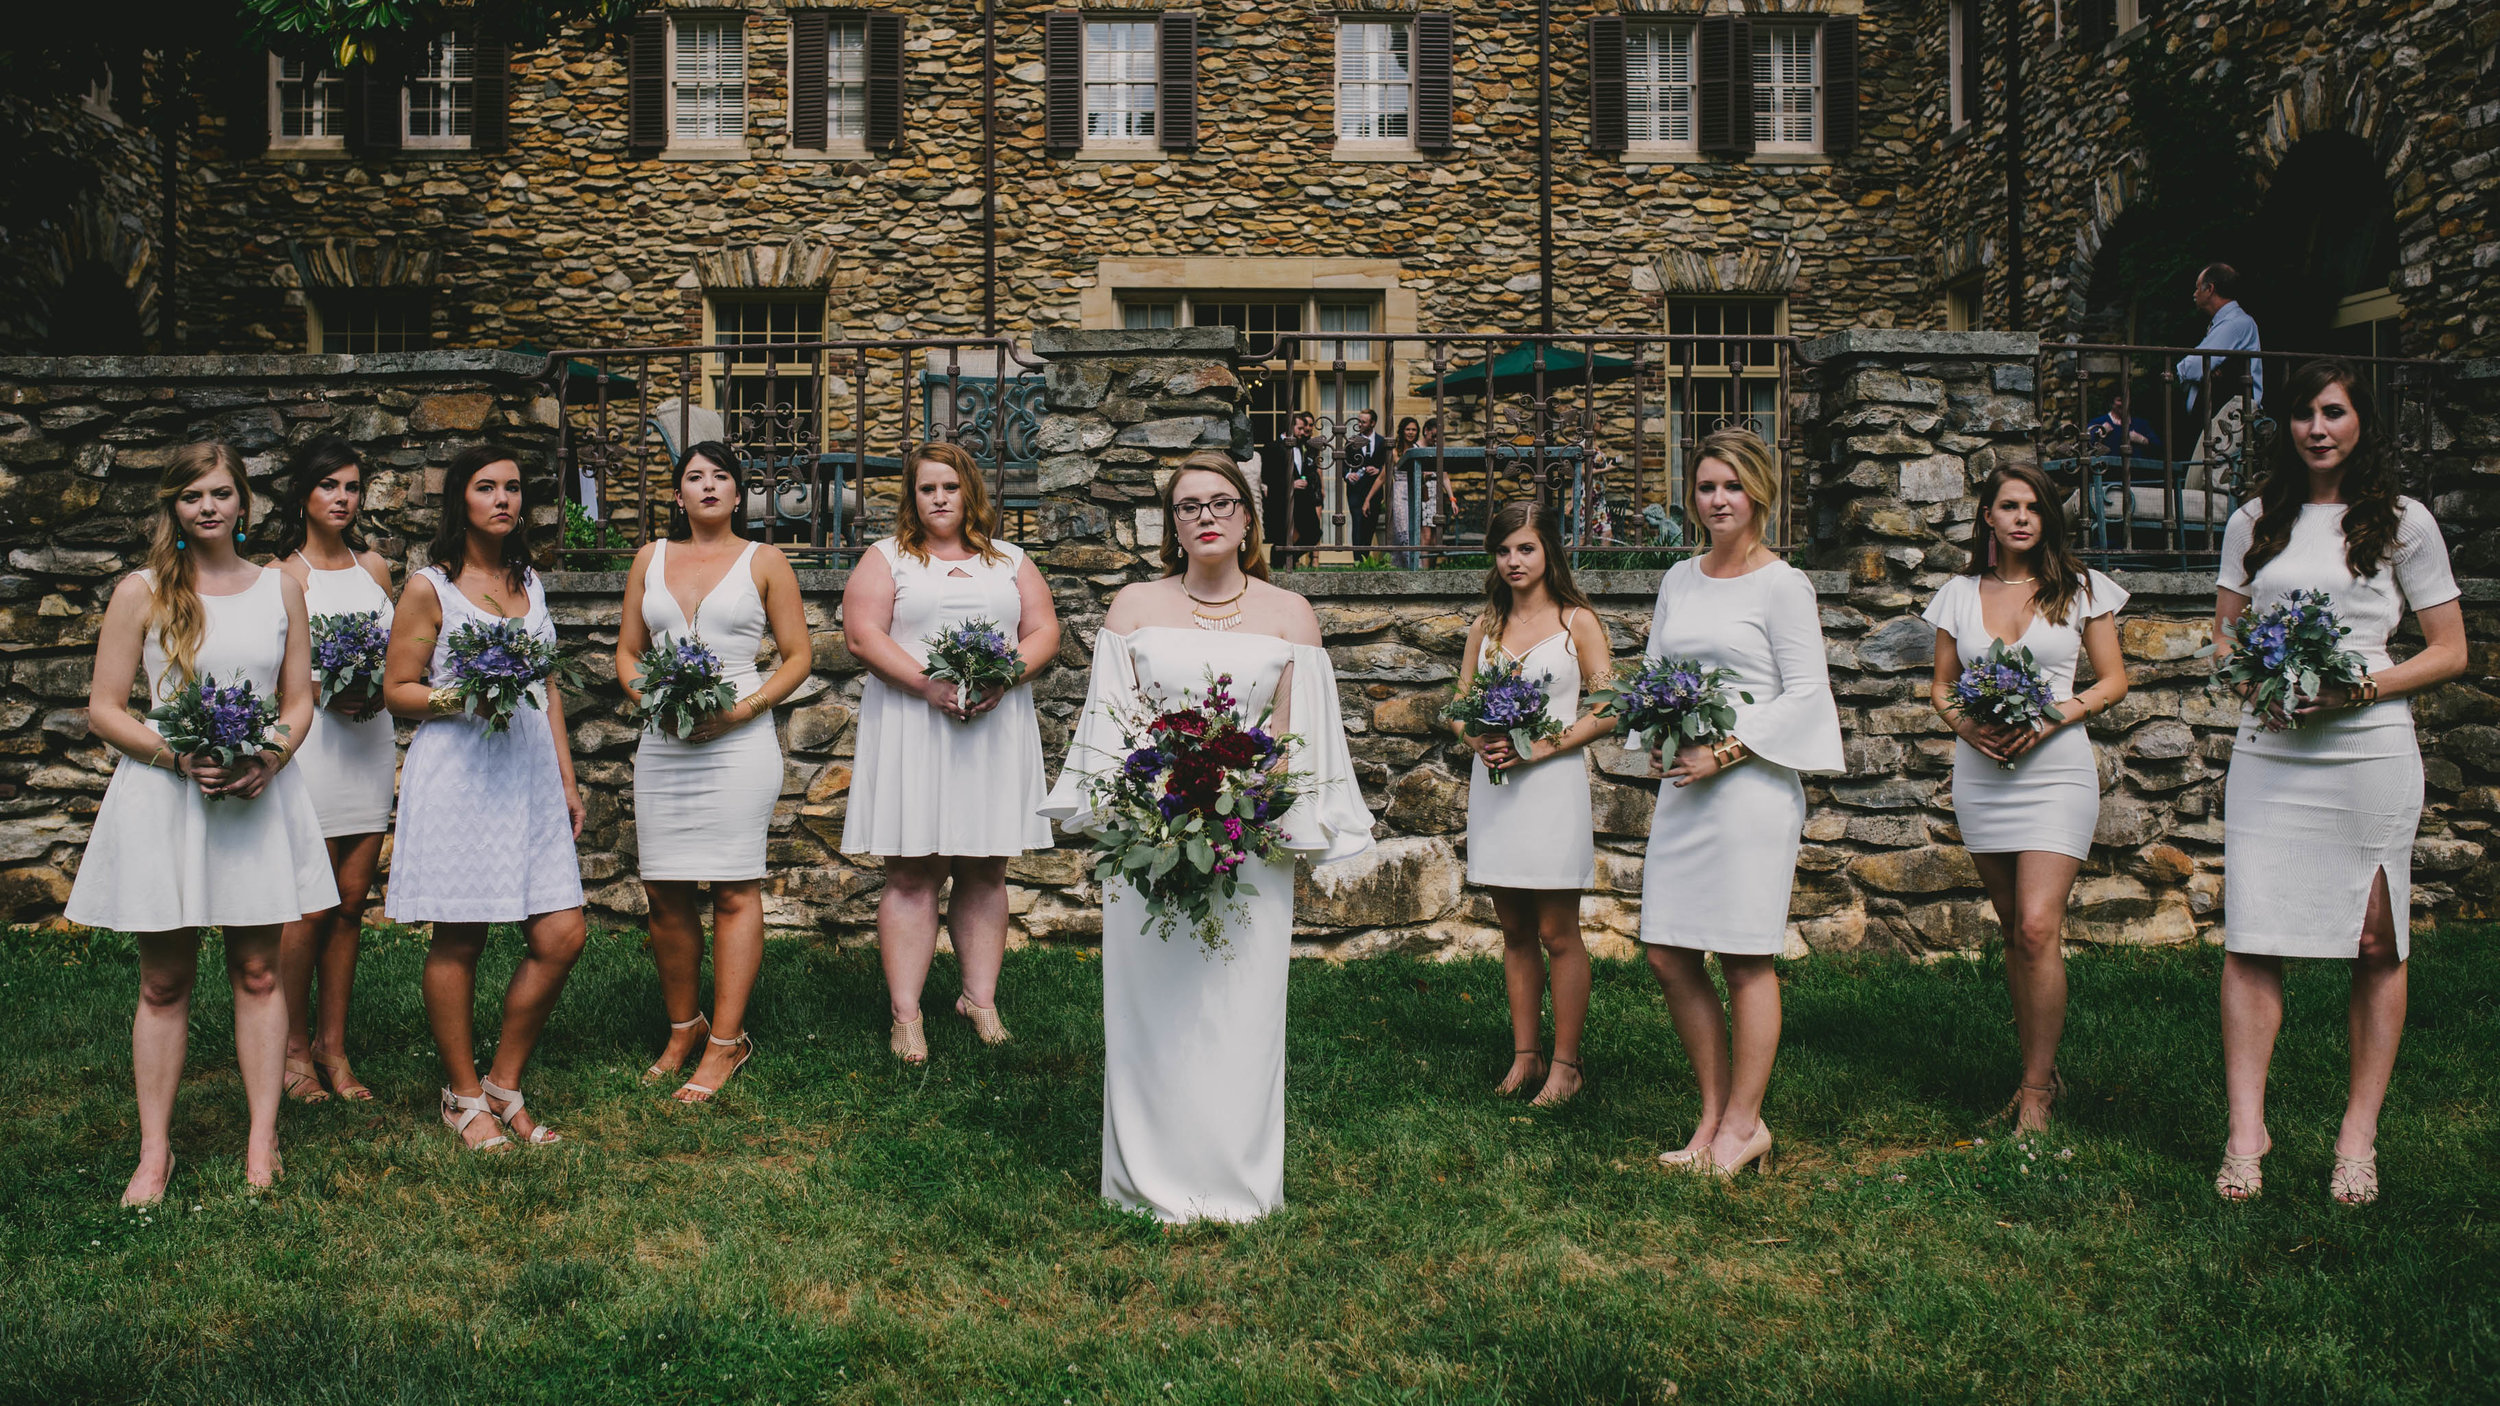 houghton-bride-and-her-bridesmaids-at-the-graylyn.jpg